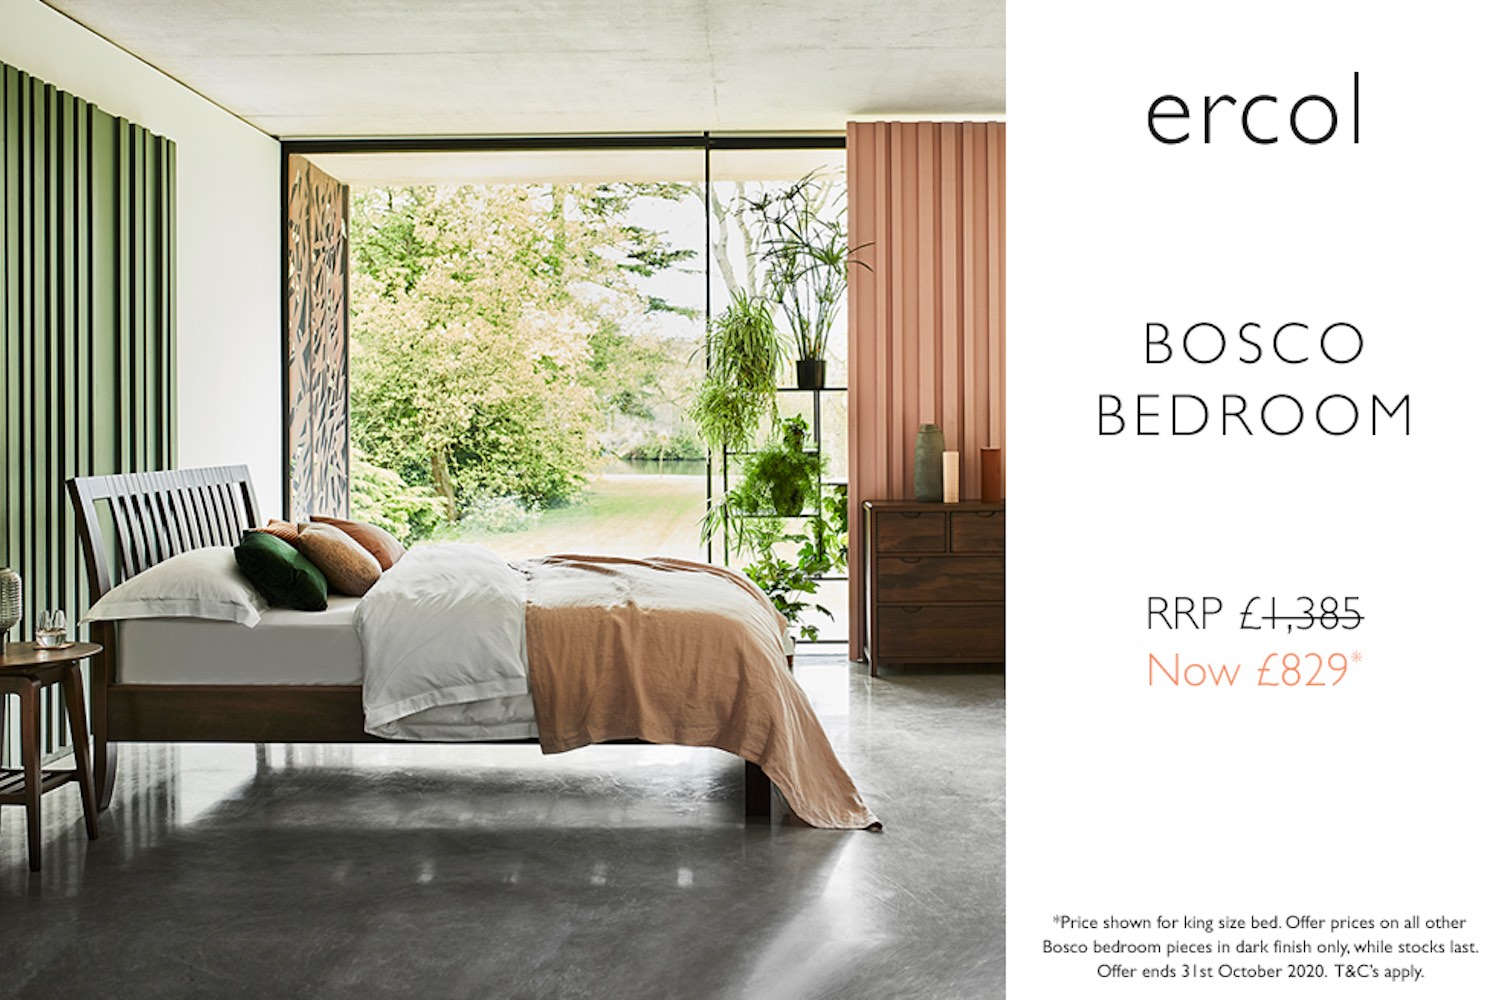 ercol Bosco promotion